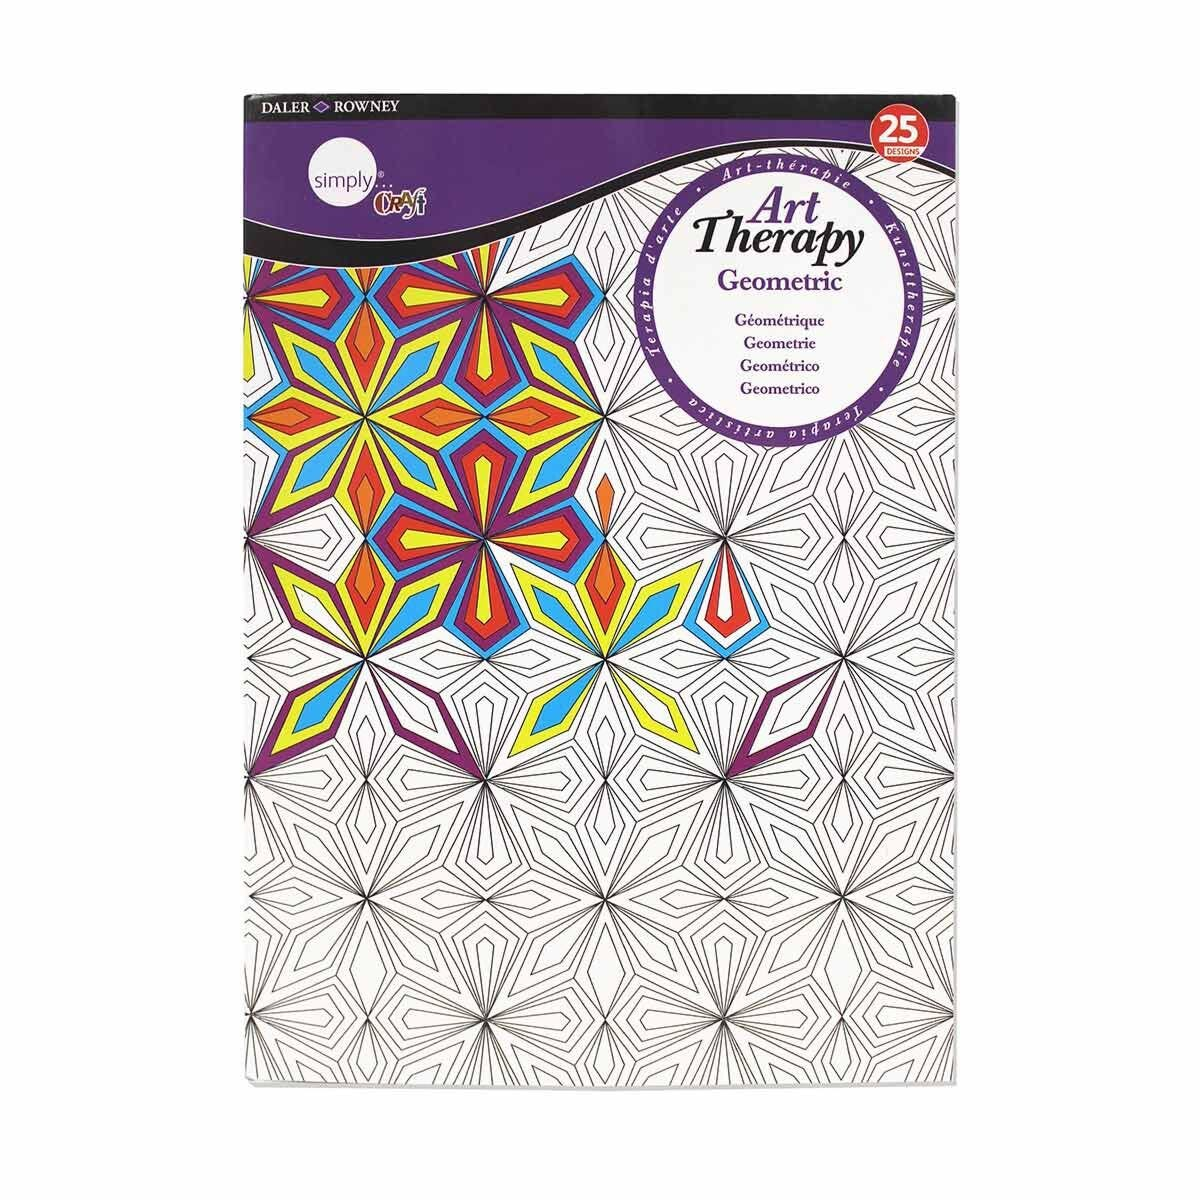 Daler Rowney Art Theraby Colouring Book Geometric A4